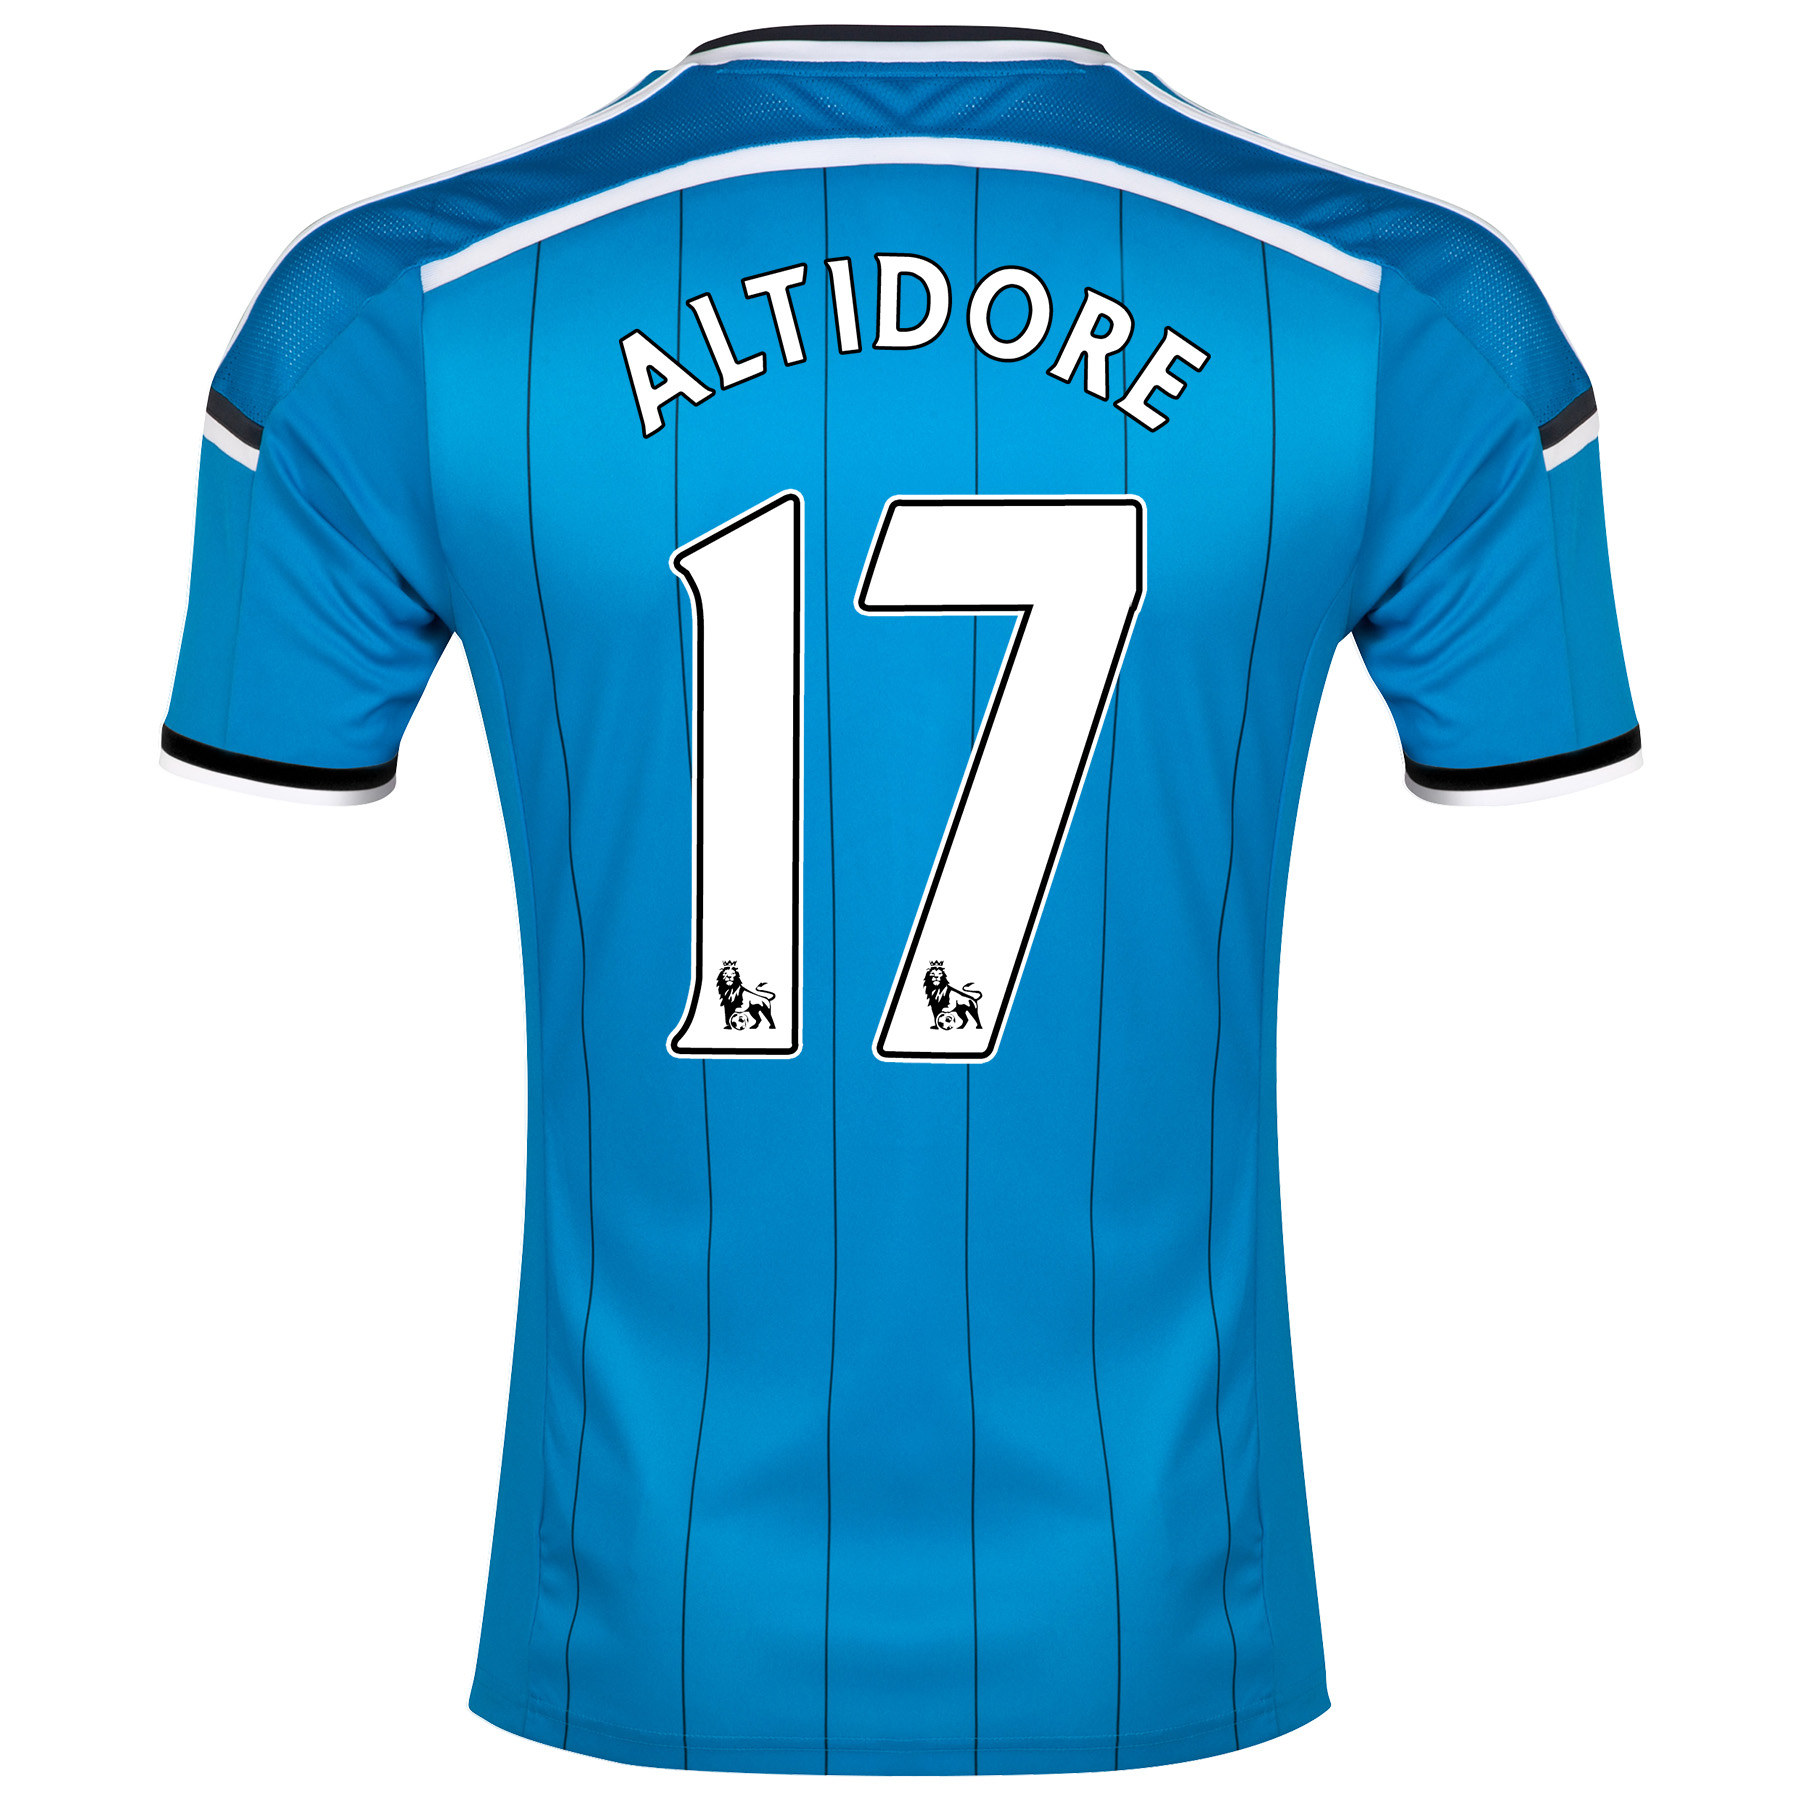 Sunderland Away Shirt 2014/15 - Junior Lt Blue with Altidore 17 printing